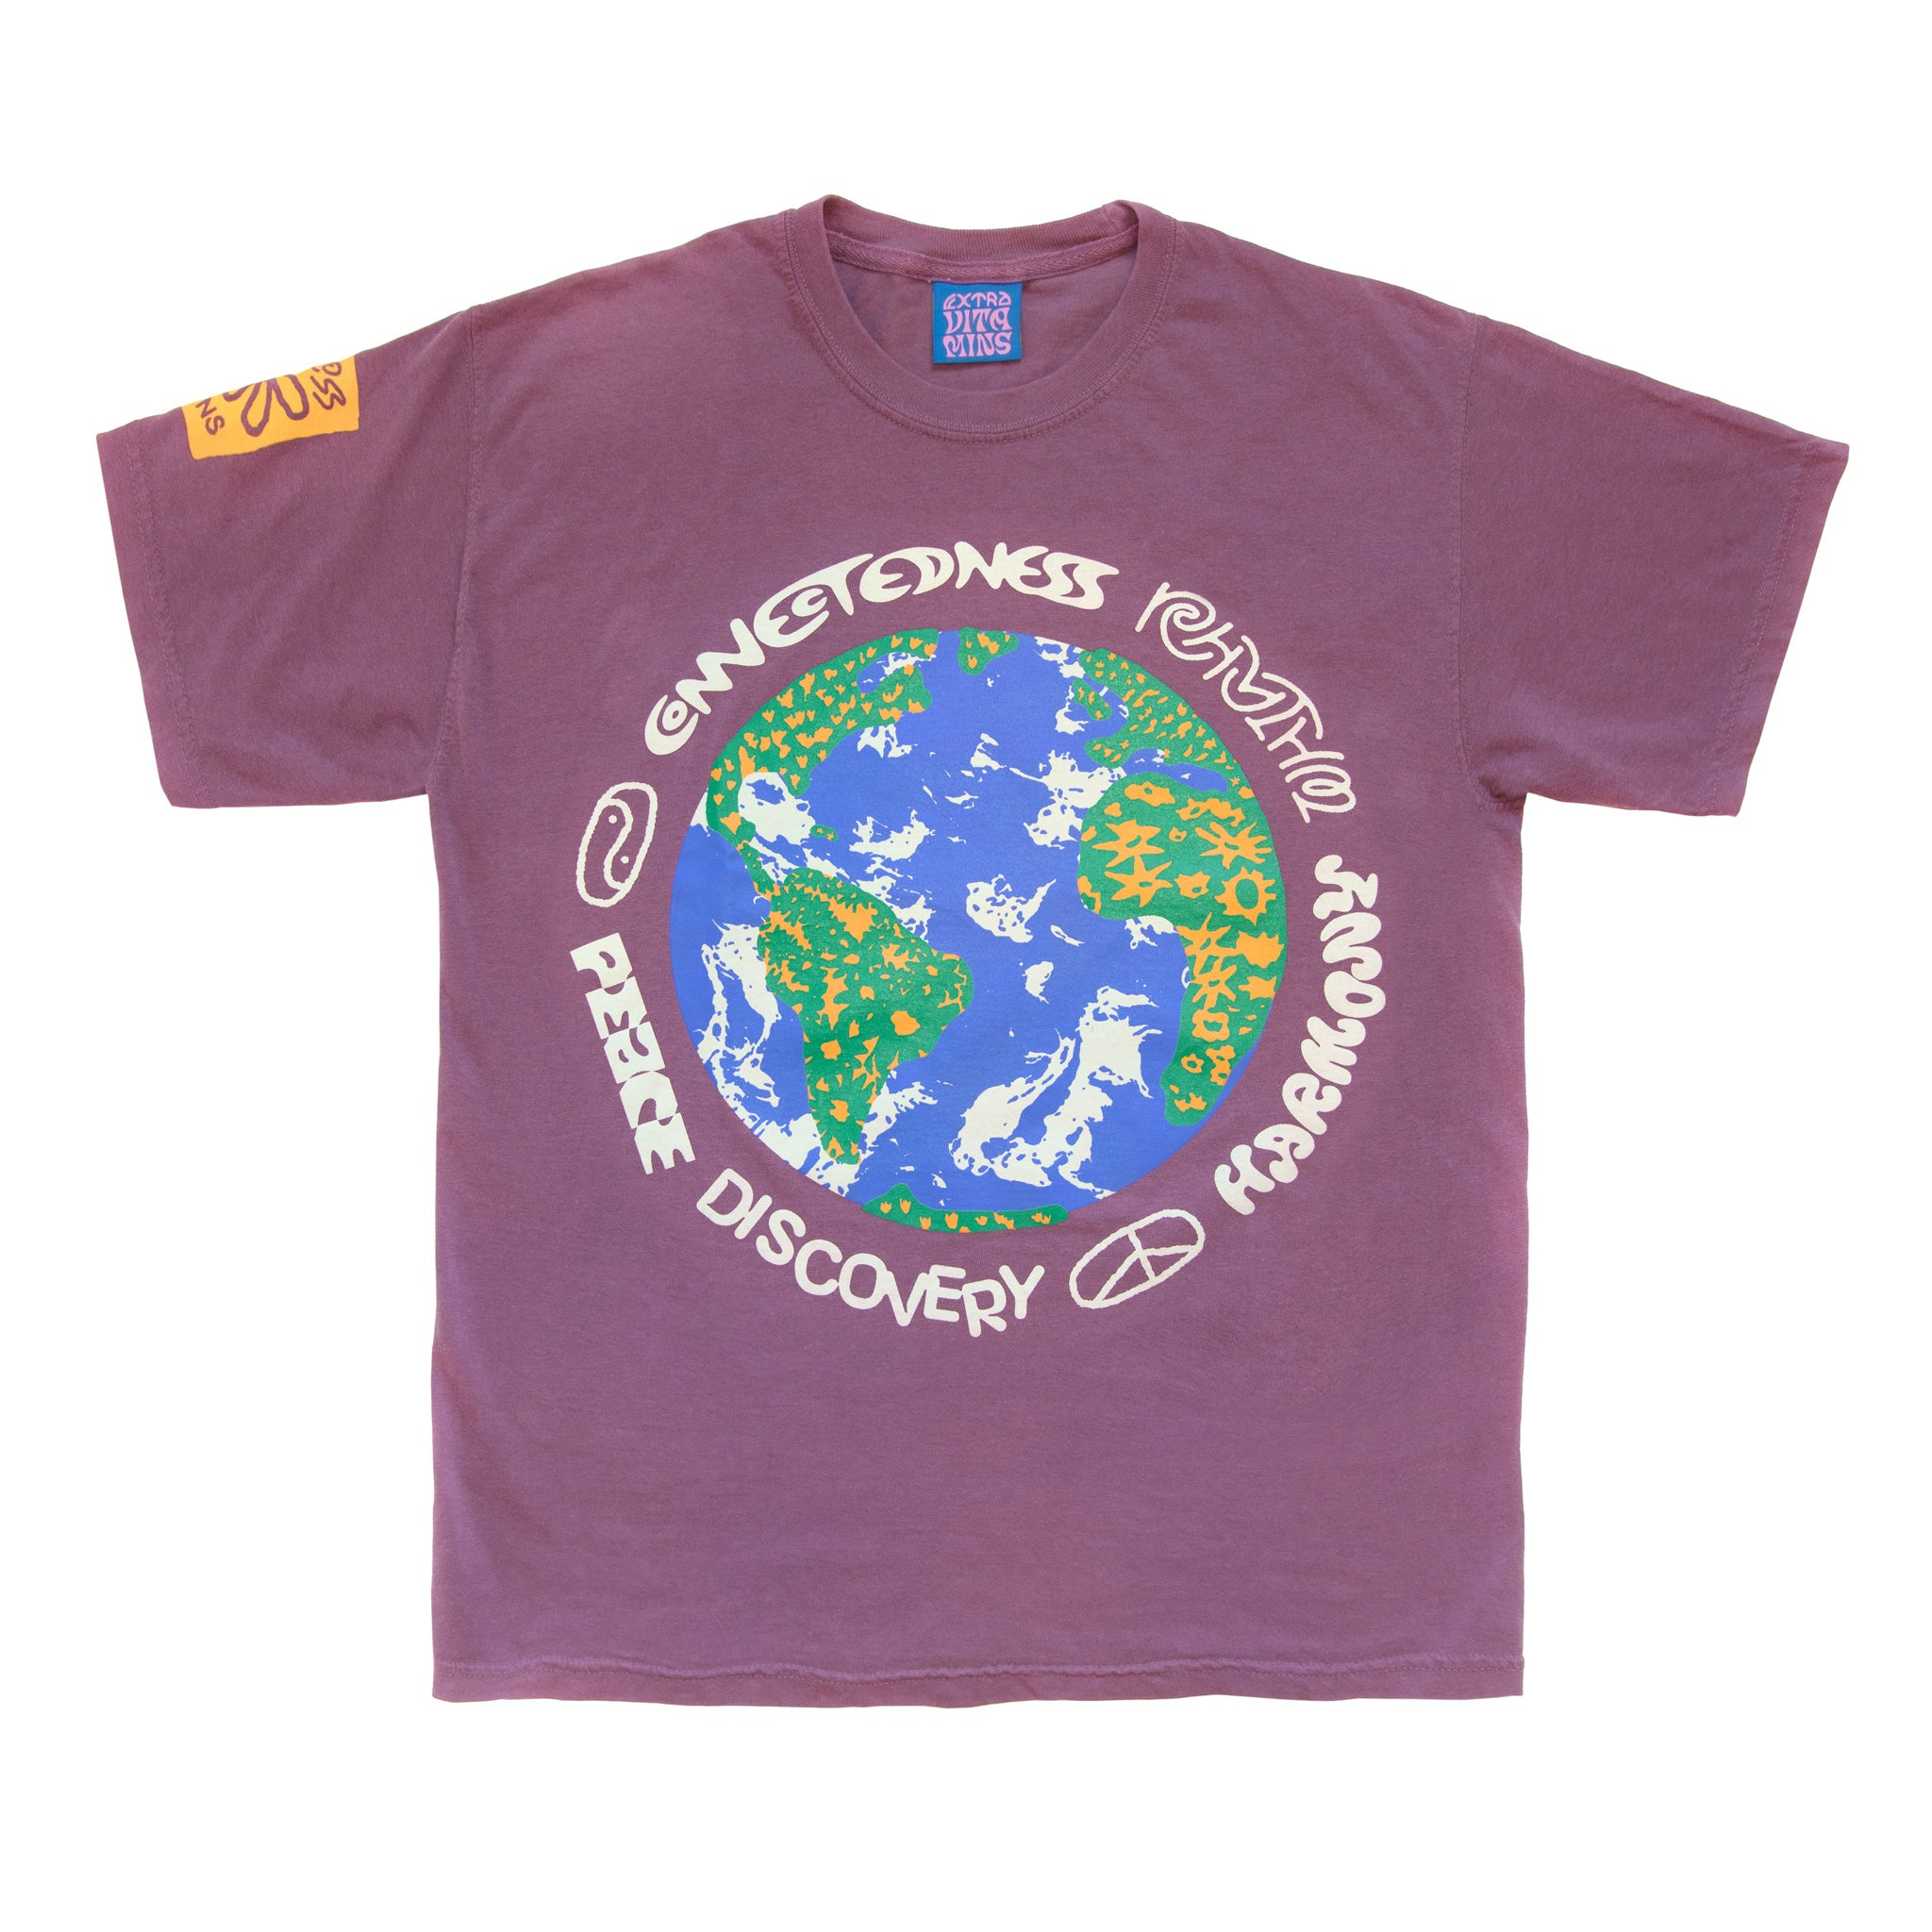 Connectedness T-shirt